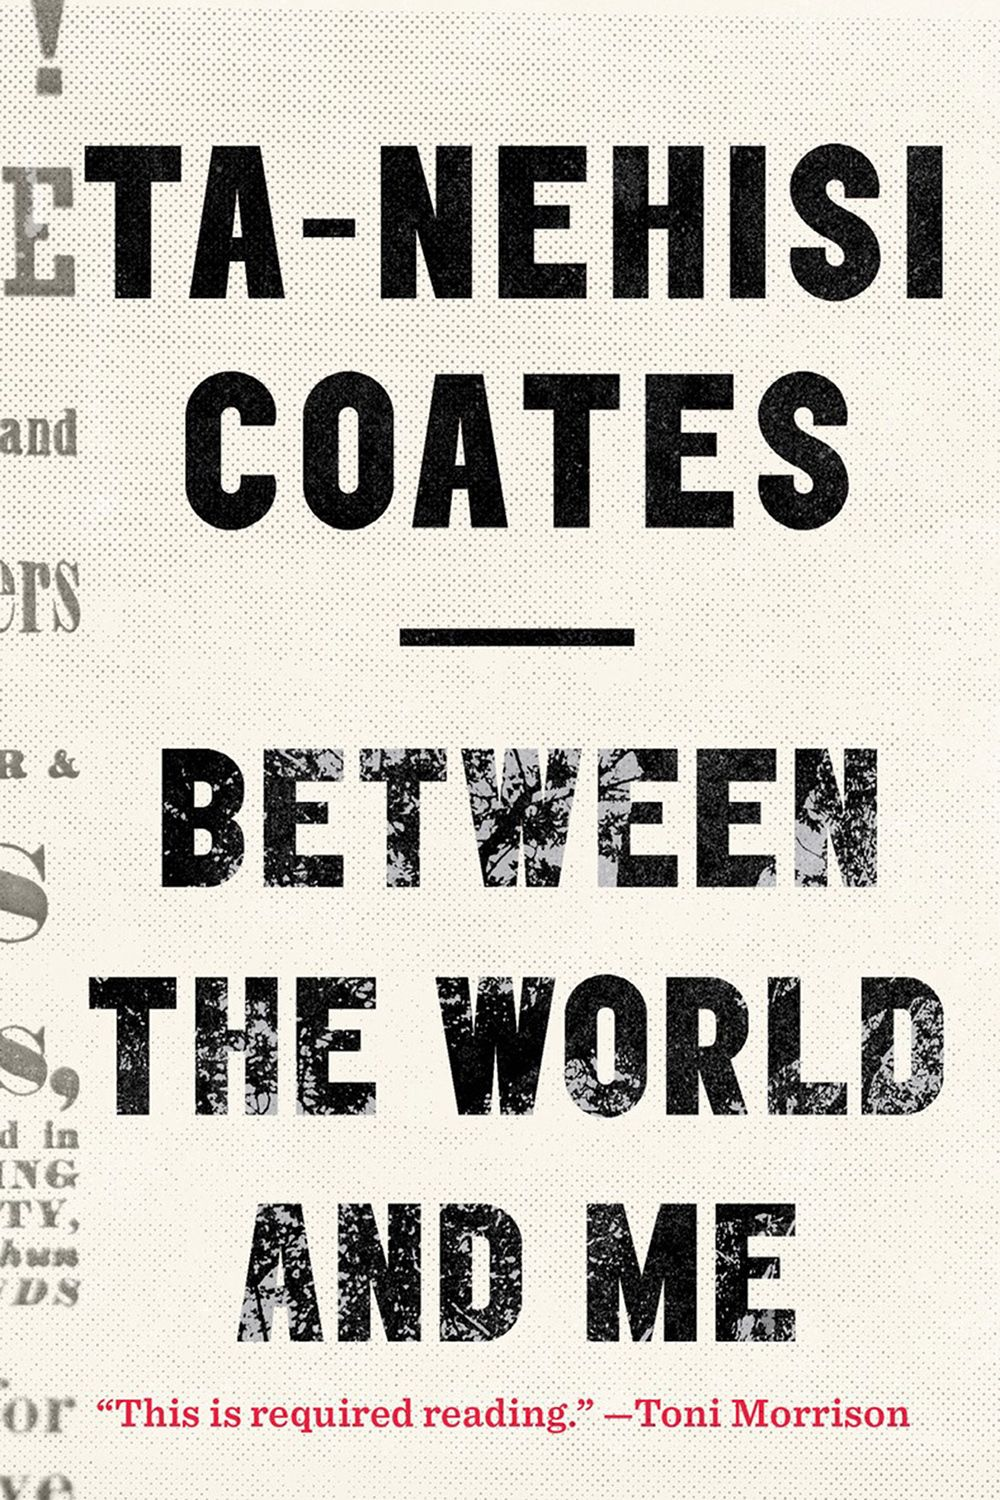 <p>The #1 <em>New York Times</em> Bestseller and National Book Award winner, <em>Between The World and Me</em> is a letter from Ta-Nehisi Coates, the greatest authority on the history of race, to his adolescent son on what it means to be black in society today. Based on historical and personal experiences, Coates builds a framework with which to understand the complexities of the dire racial issues in our country with both bracing severity and redemptive grace.</p>